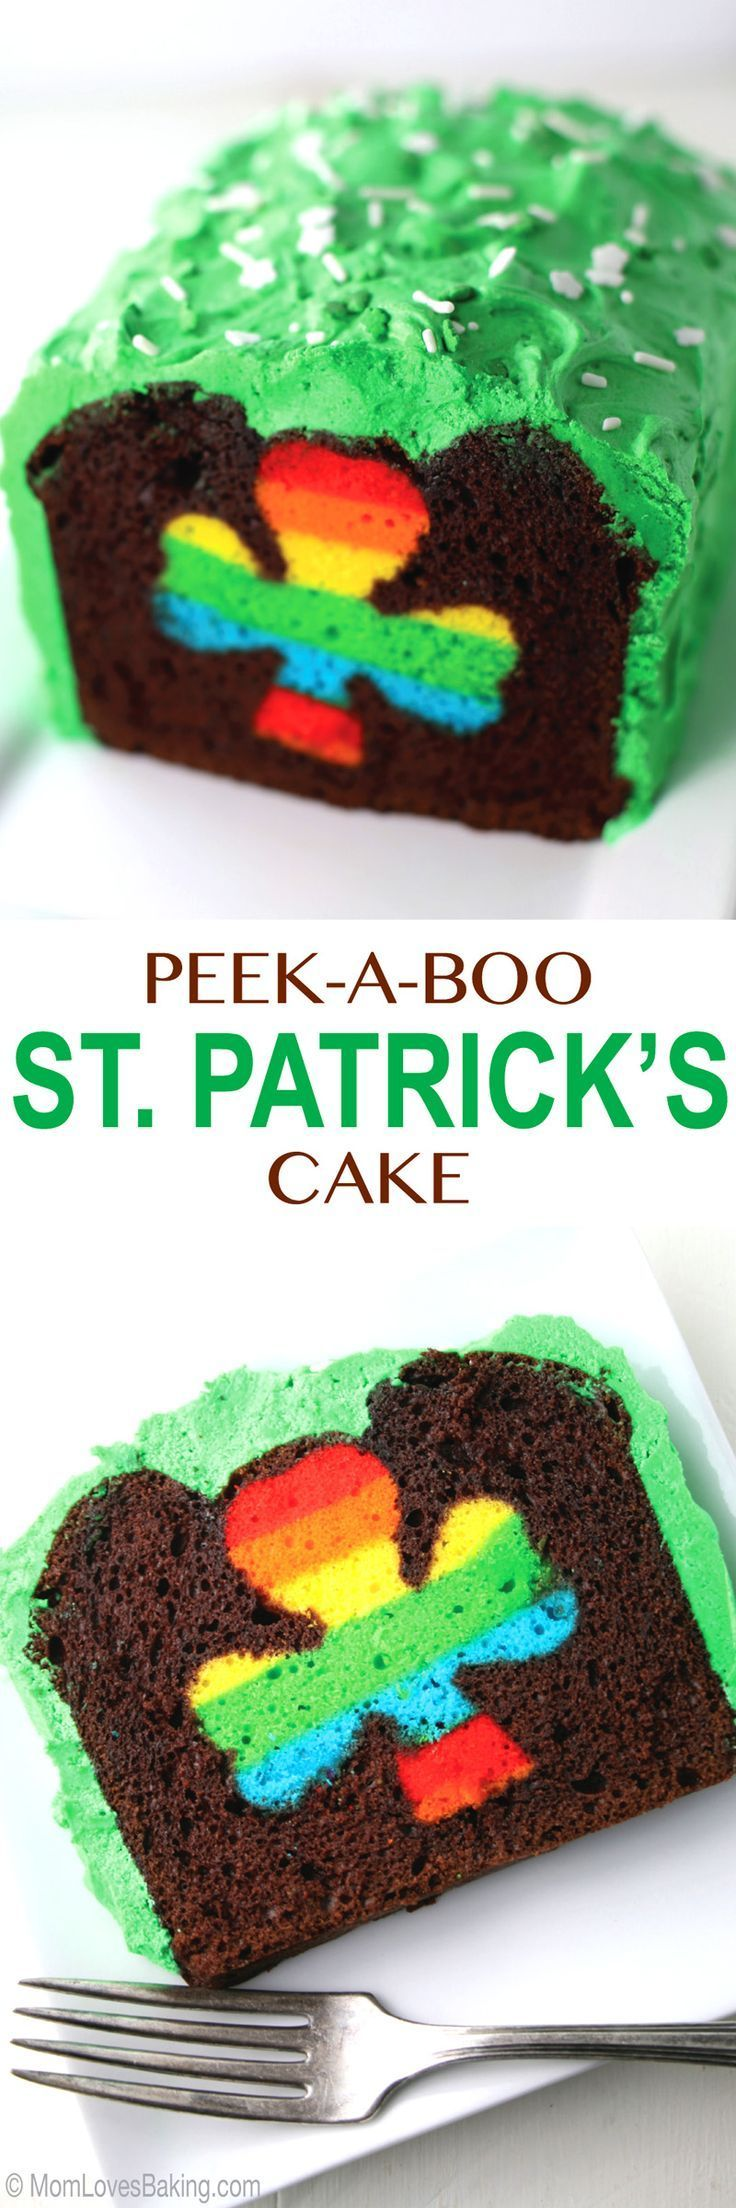 Christmas Loaf Cake Decoration : 196 best images about St. Patrick s Day Ideas on Pinterest ...